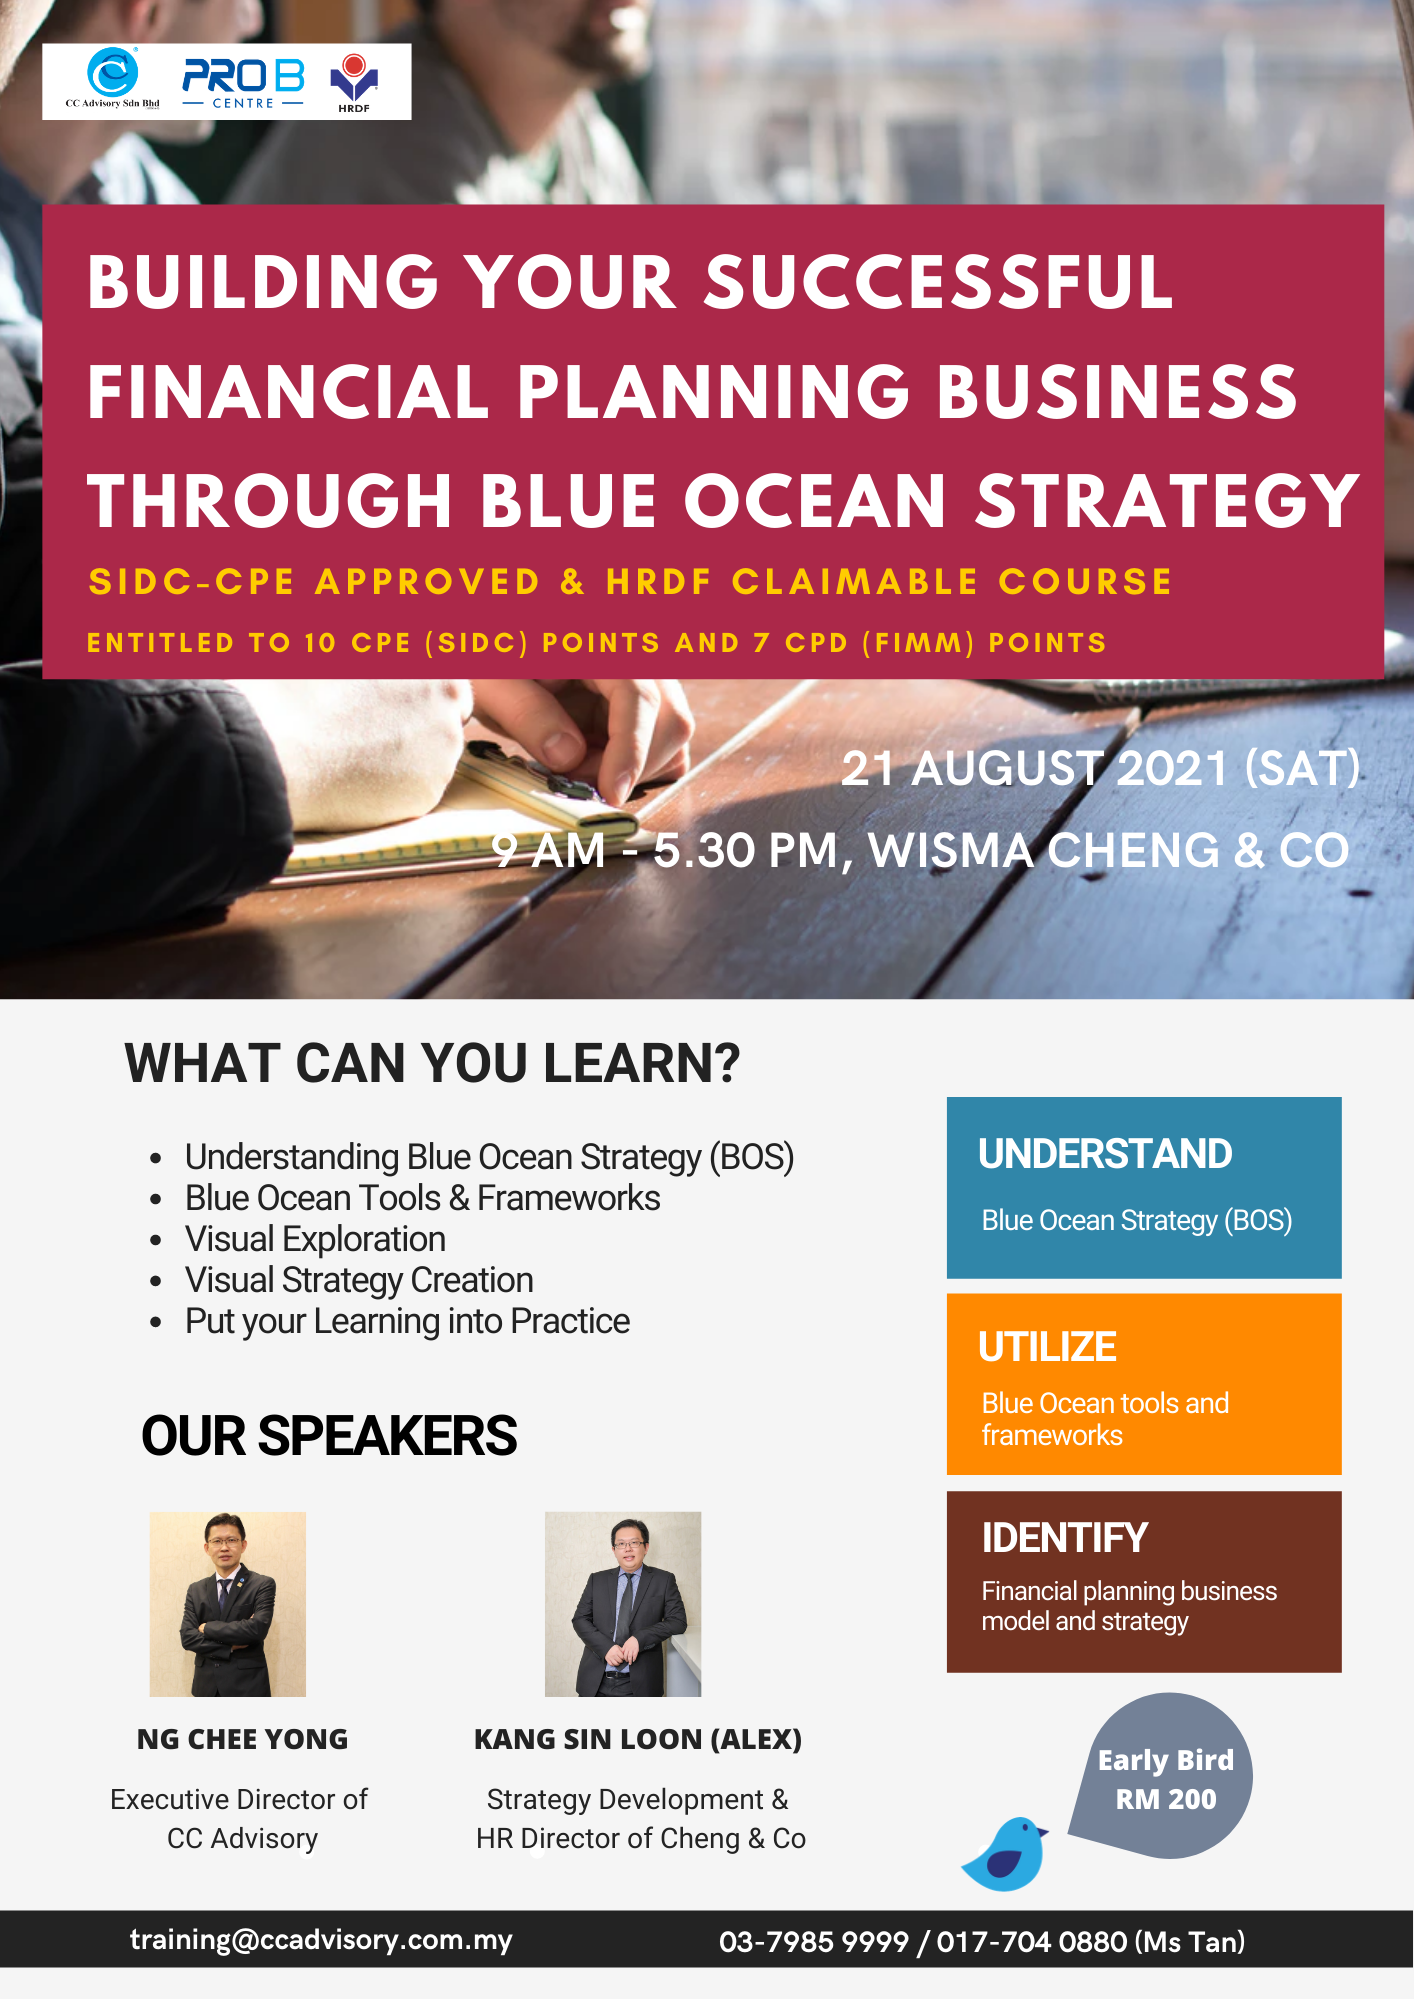 Building your Successful Business Model through Blue Ocean Strategy